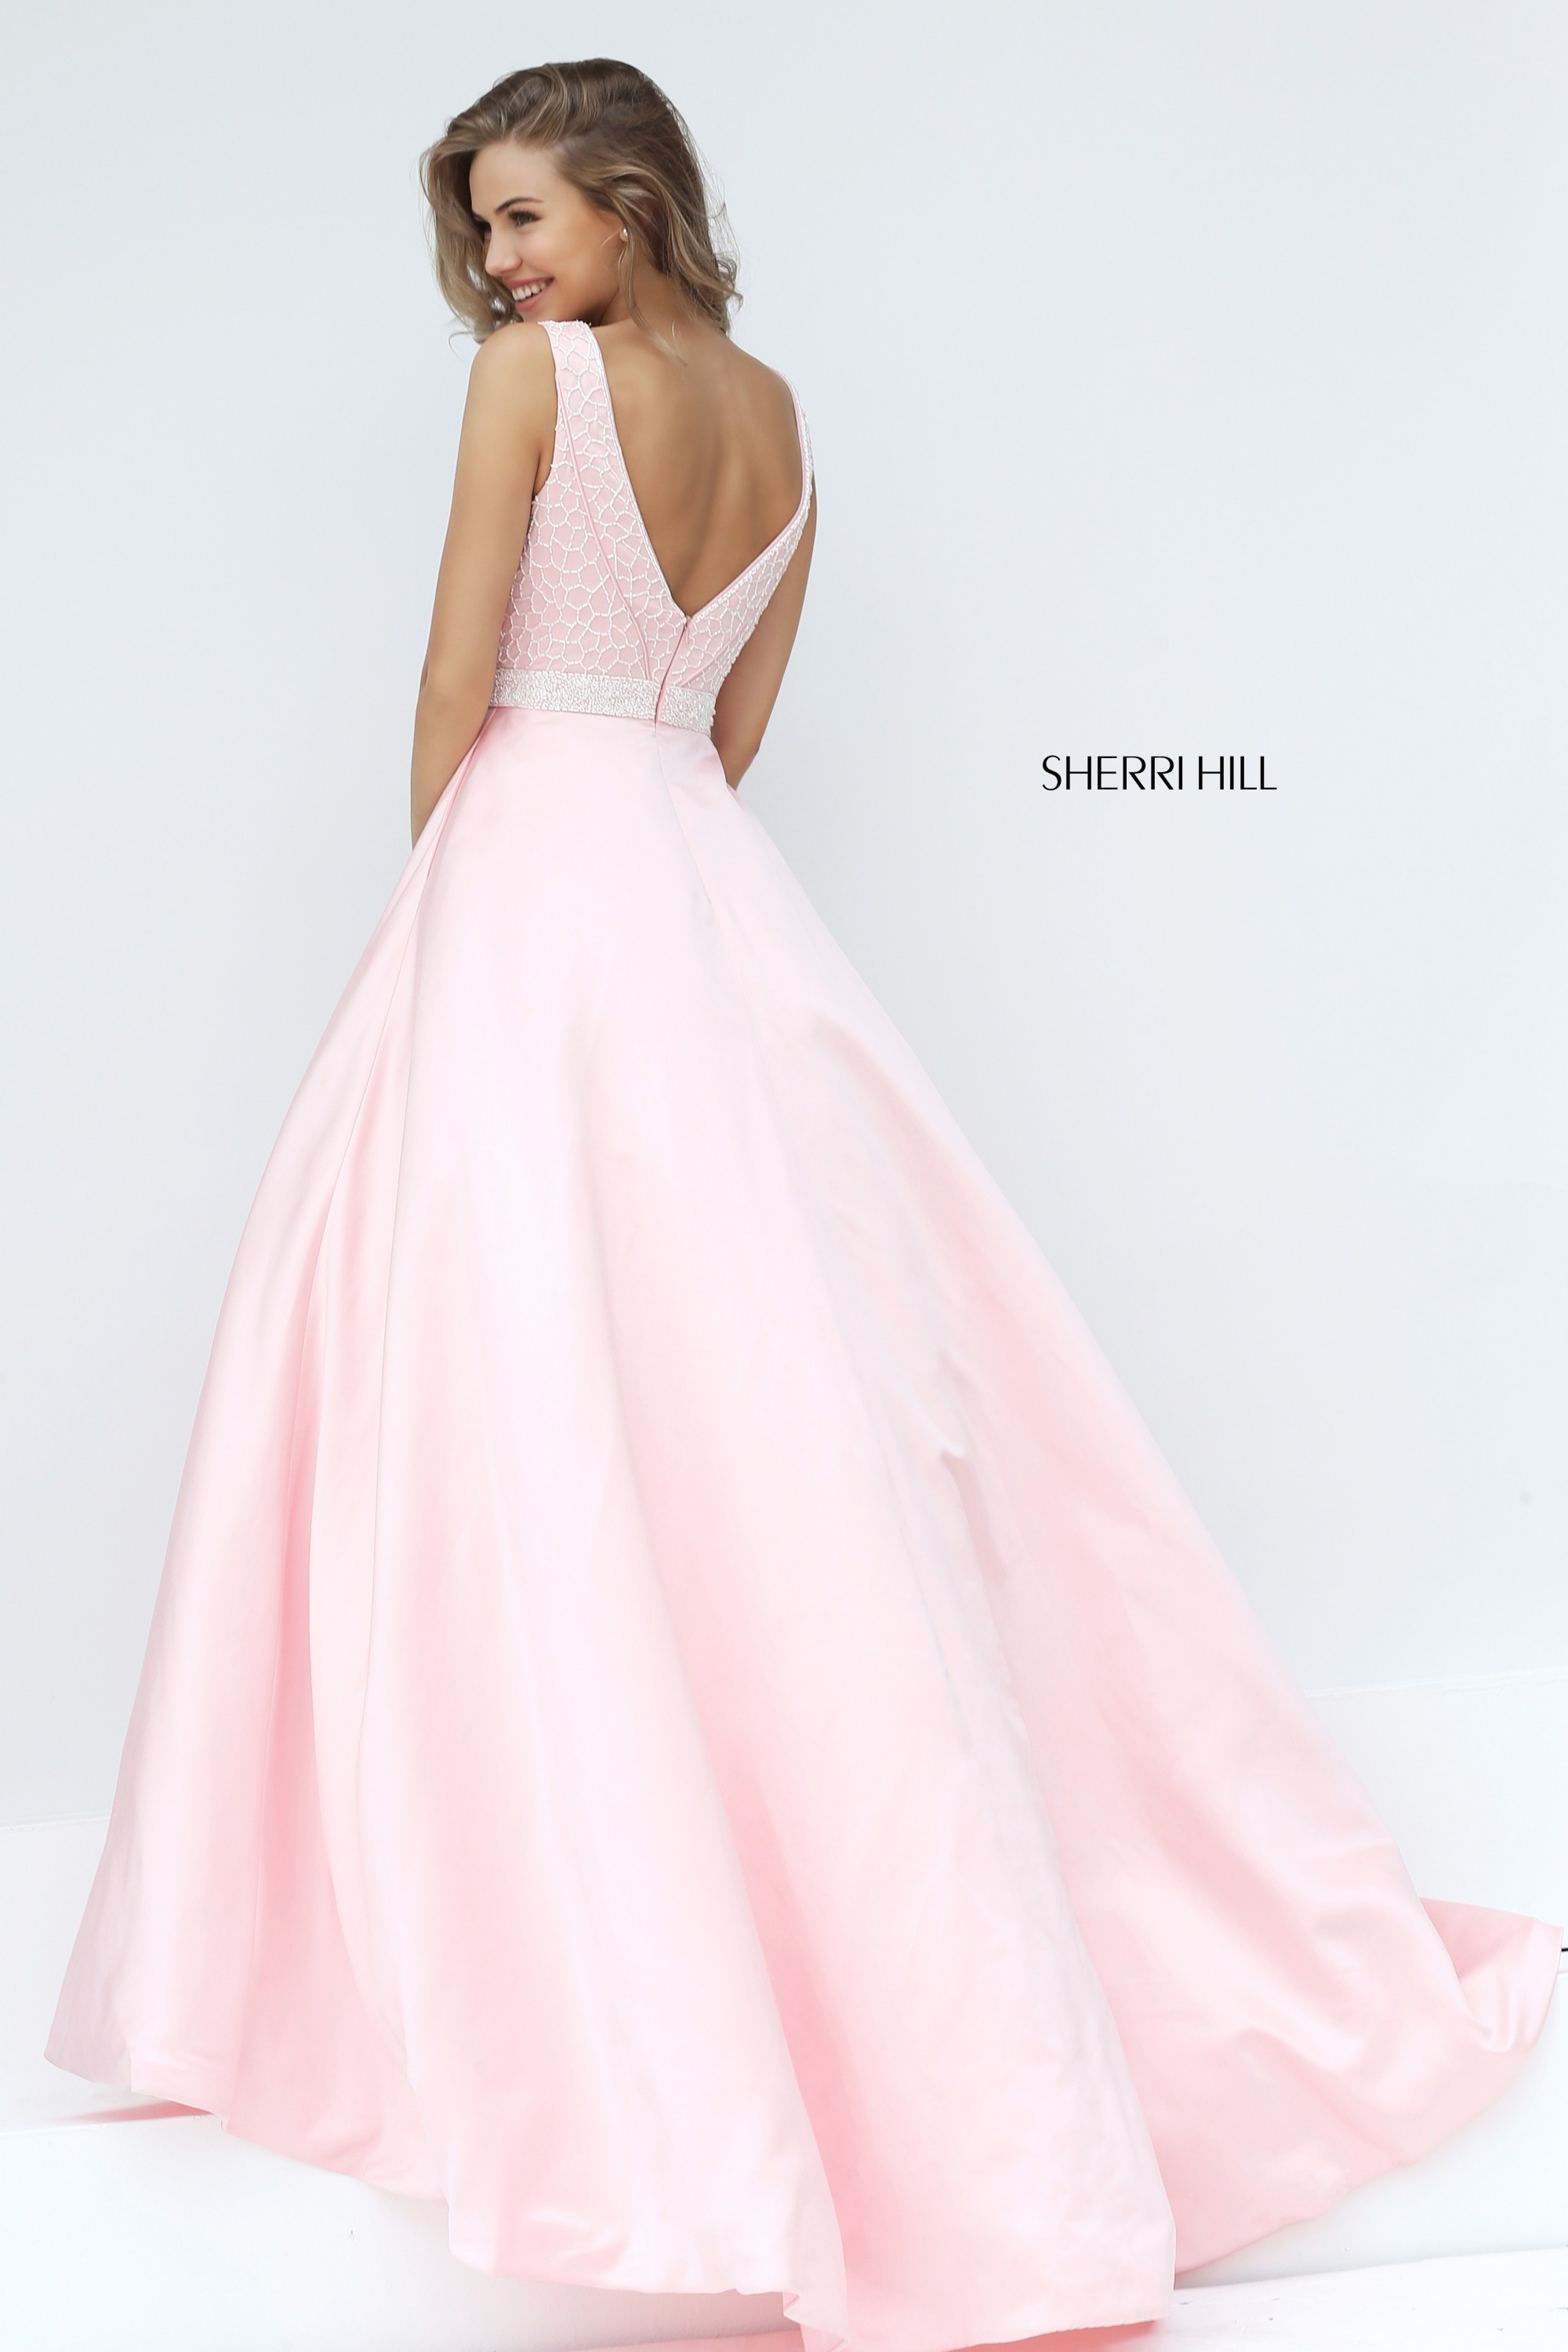 Sherri Hill 50847 Prom Dress | MadameBridal.com